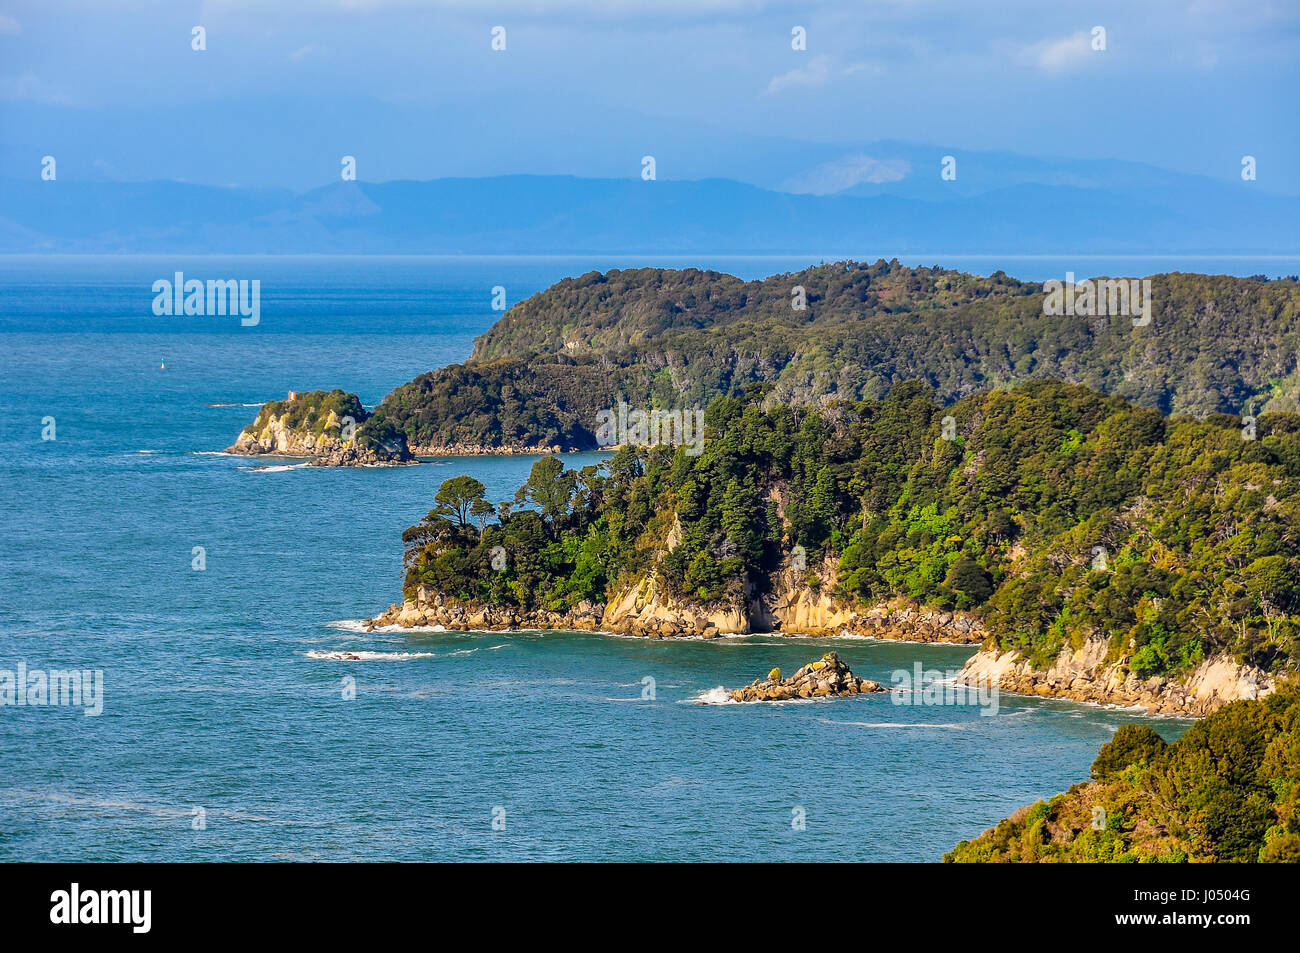 View of the coastline in the Abel Tasman National Park in New Zealand - Stock Image